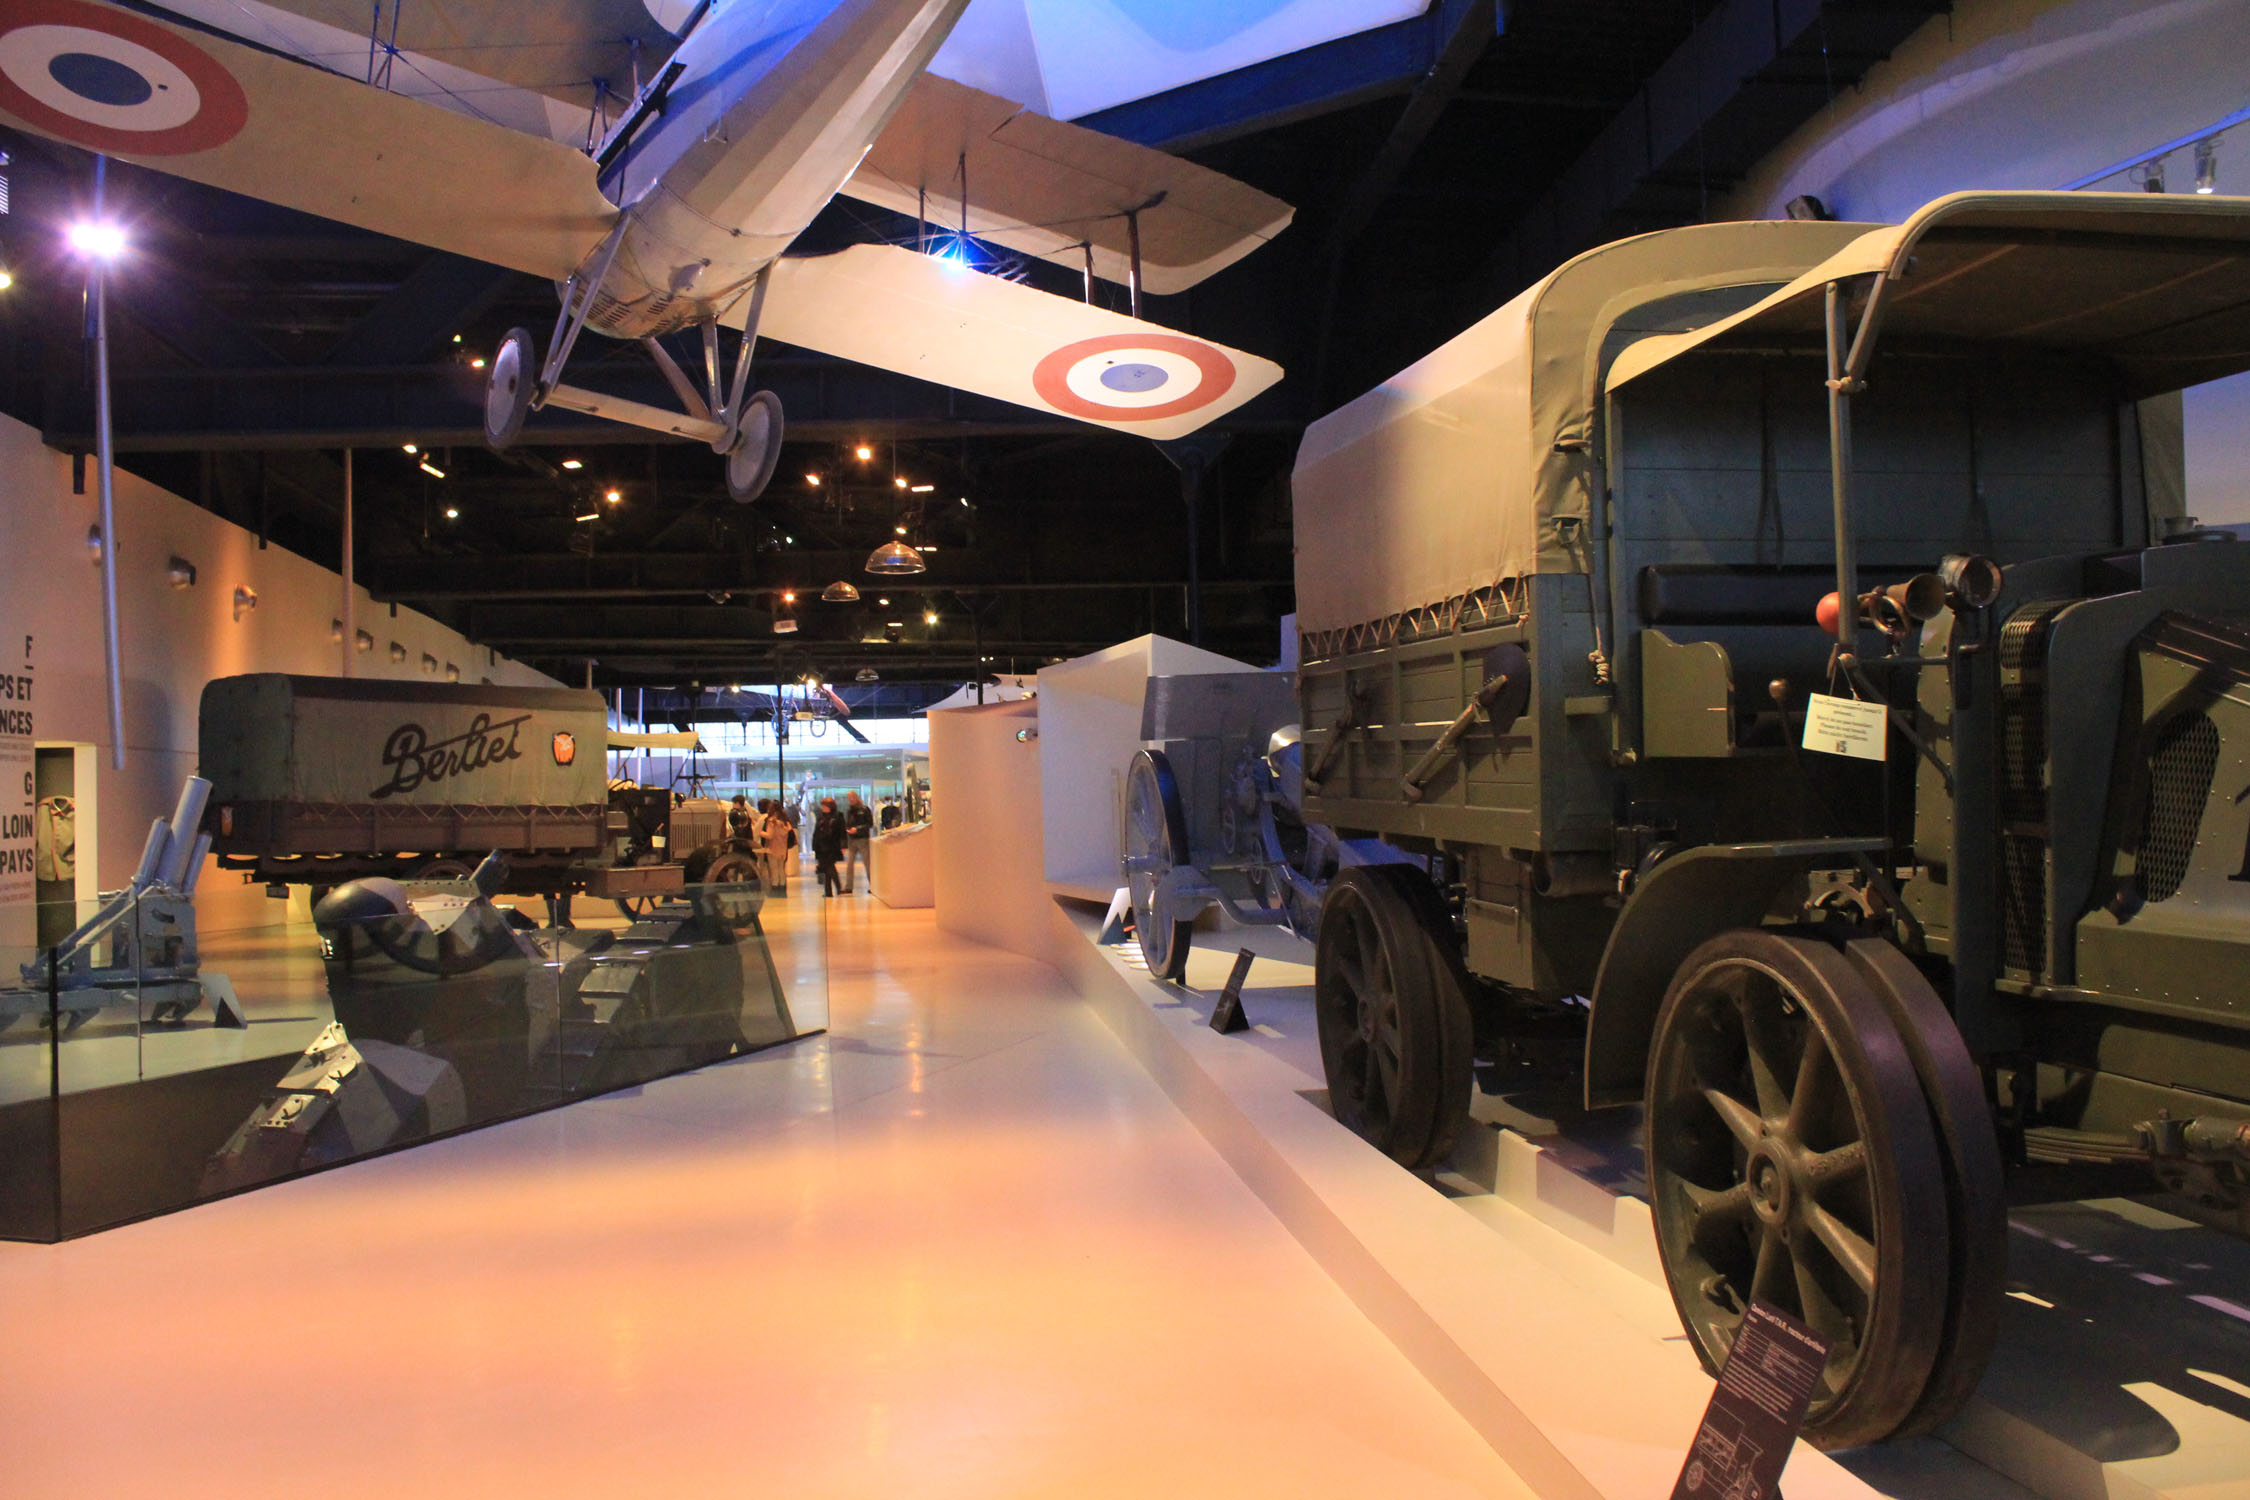 Meaux, museum of the Great War